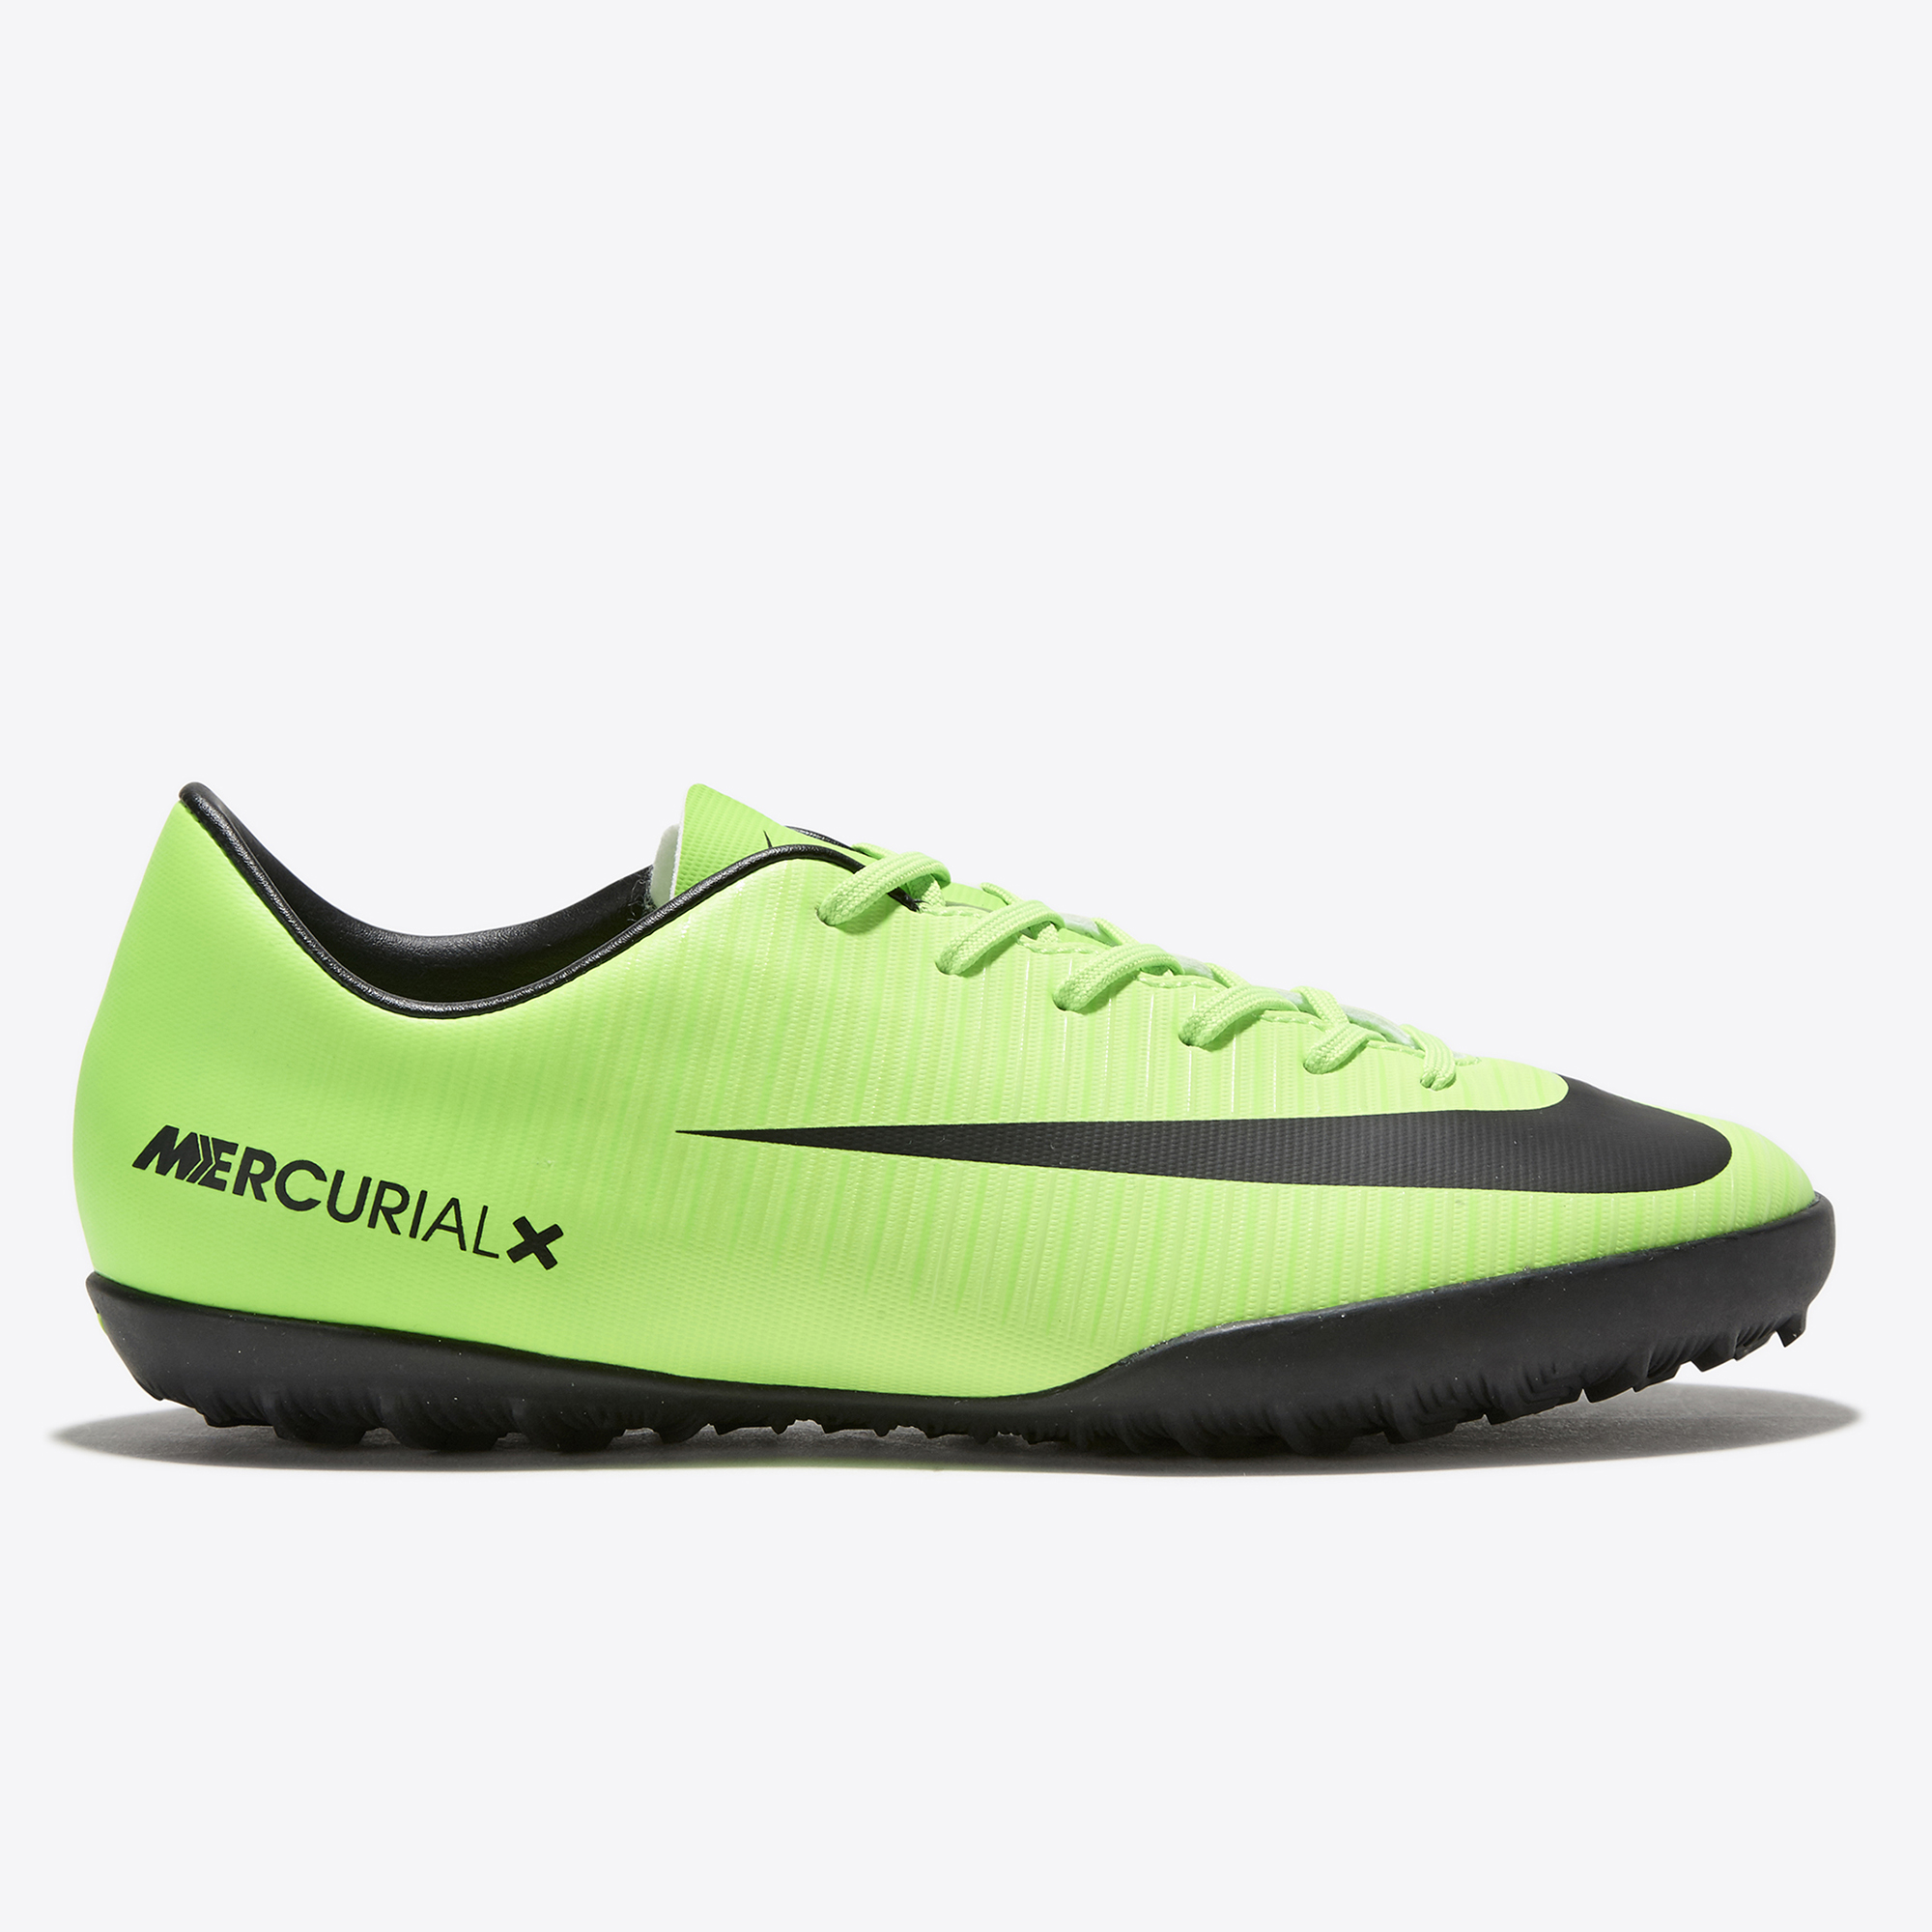 Nike Mercurial Vapor XI Astroturf Trainers - Electric Green/Black/Flas